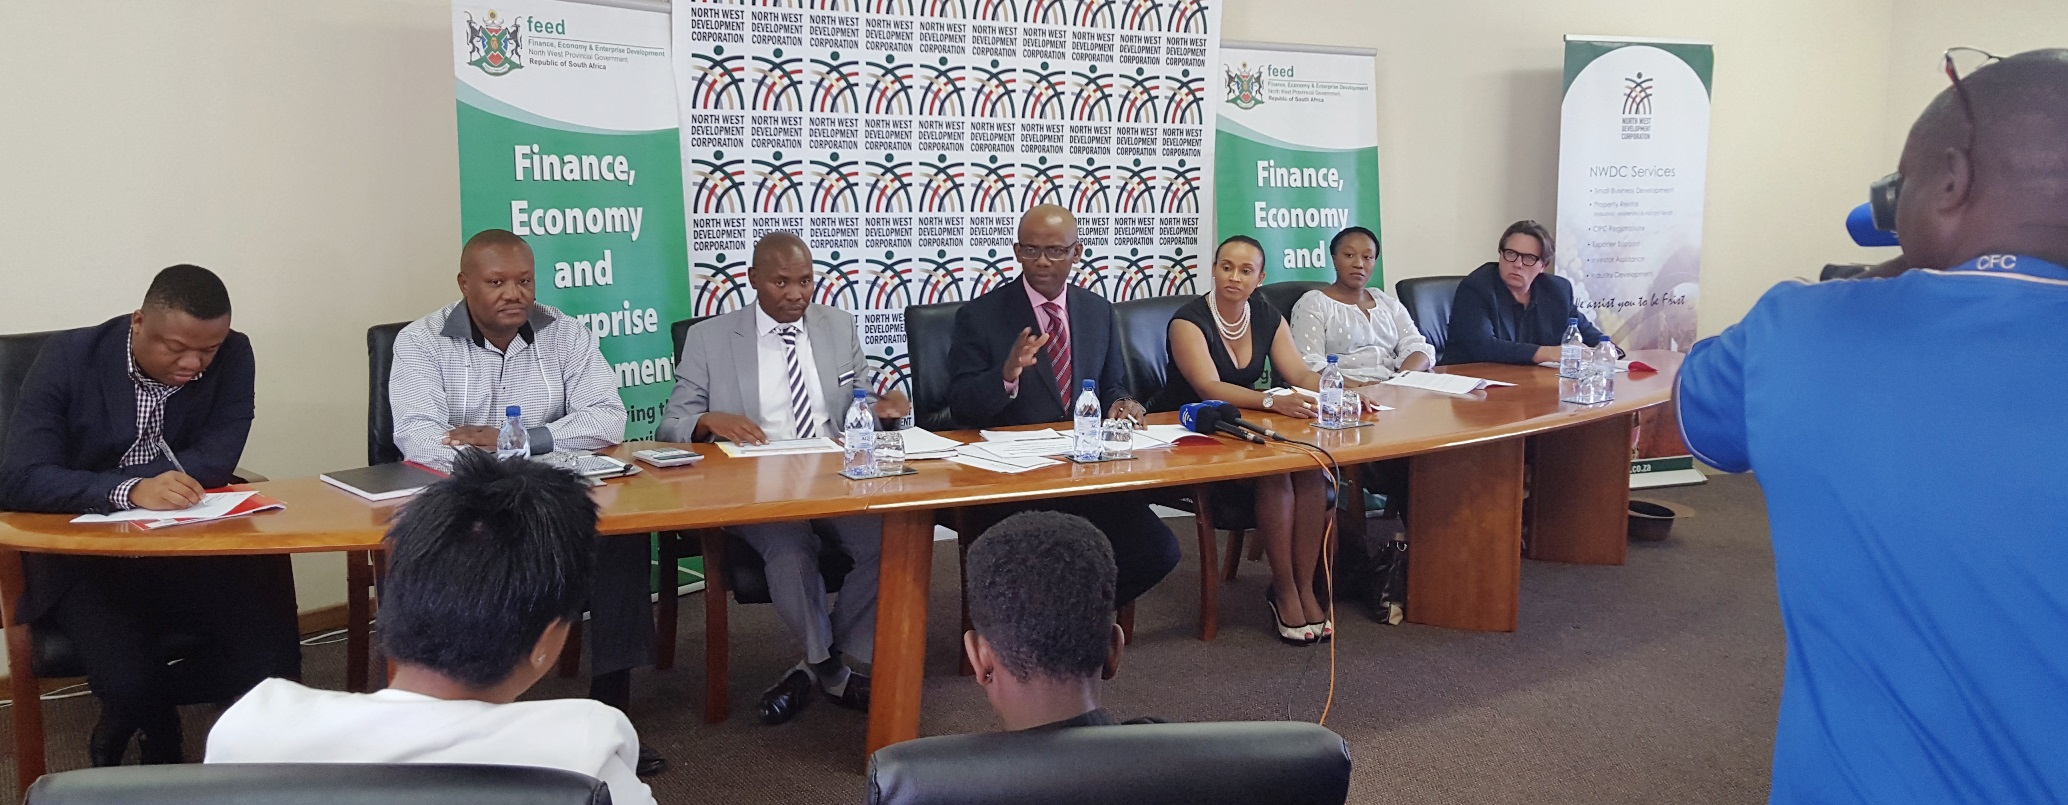 NWDC Media Briefing on Christiana_smaller for web